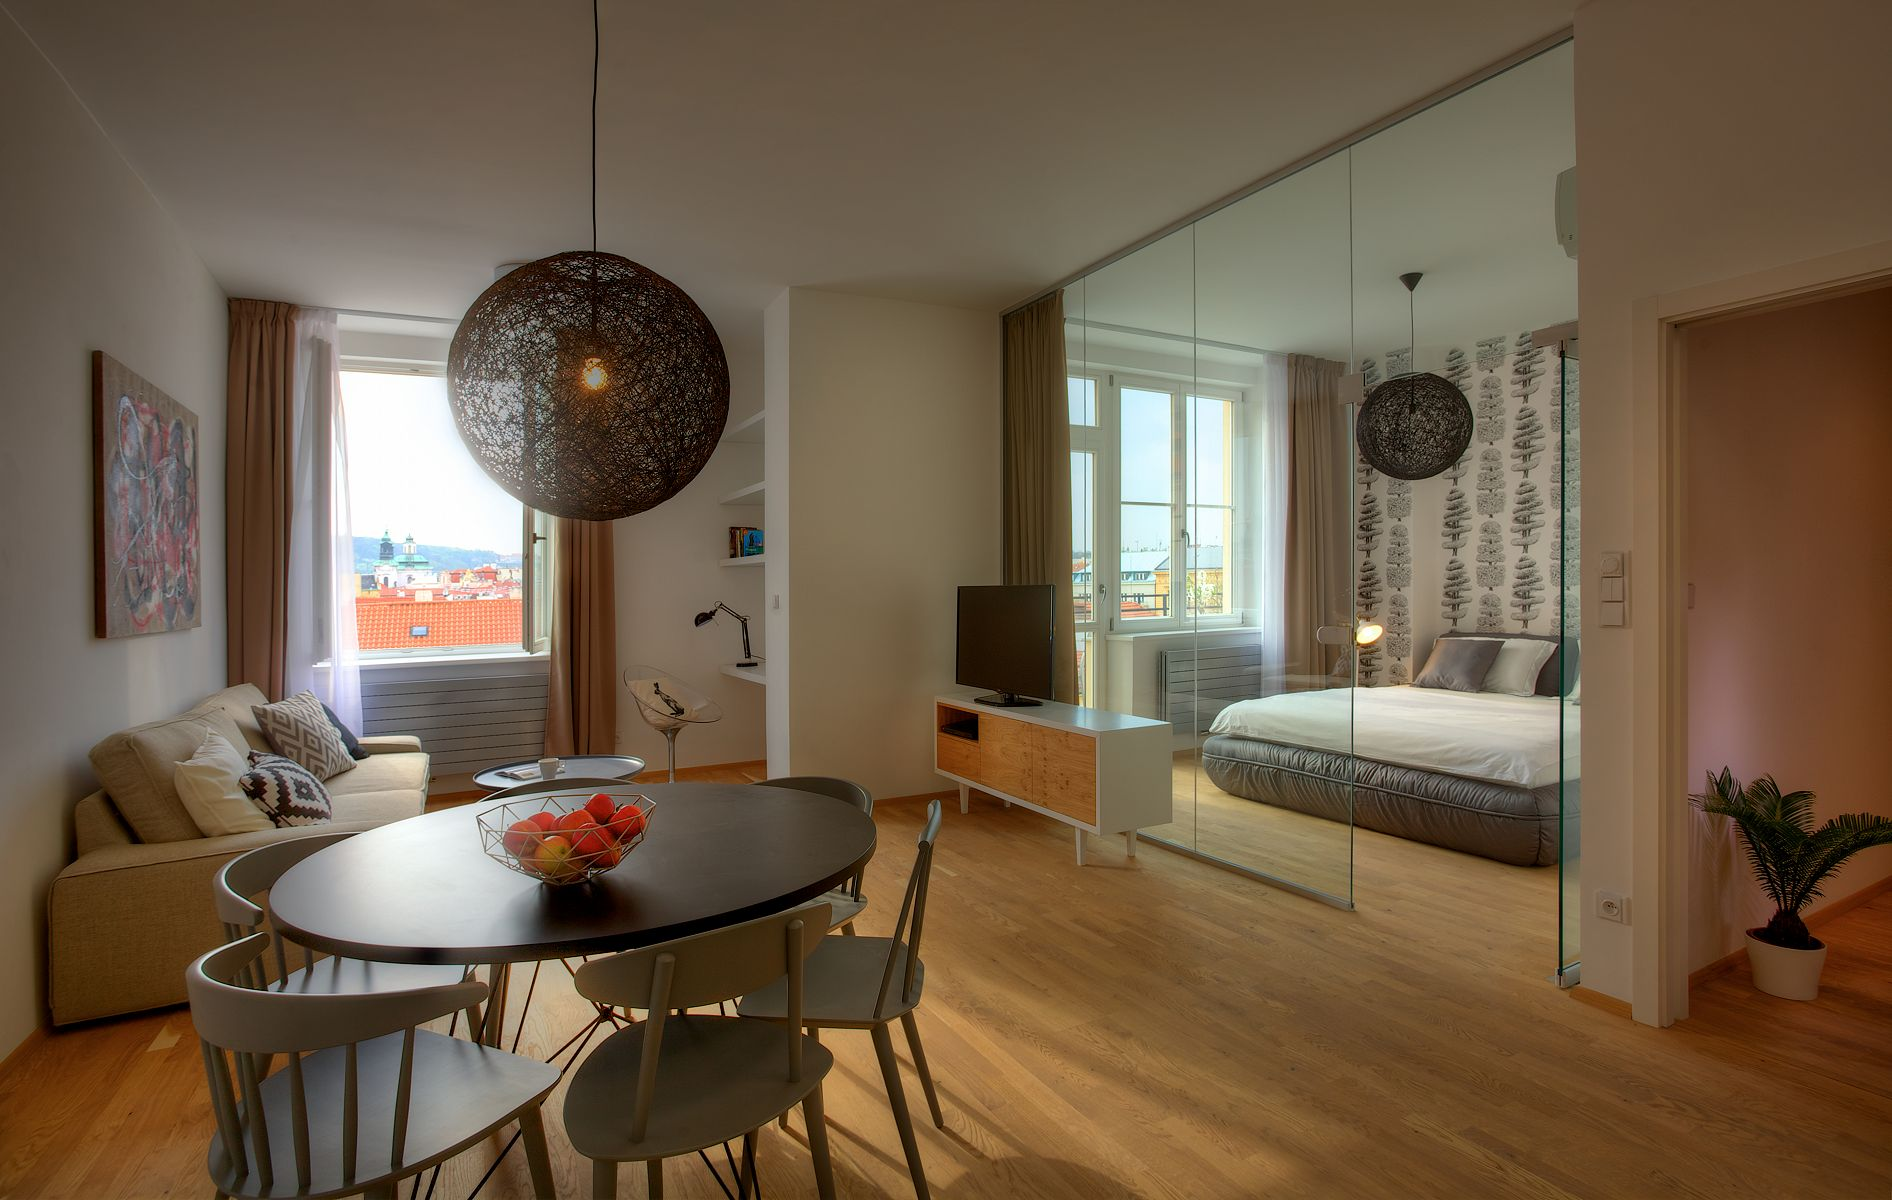 Living Room With Bedroom, Glass Wall